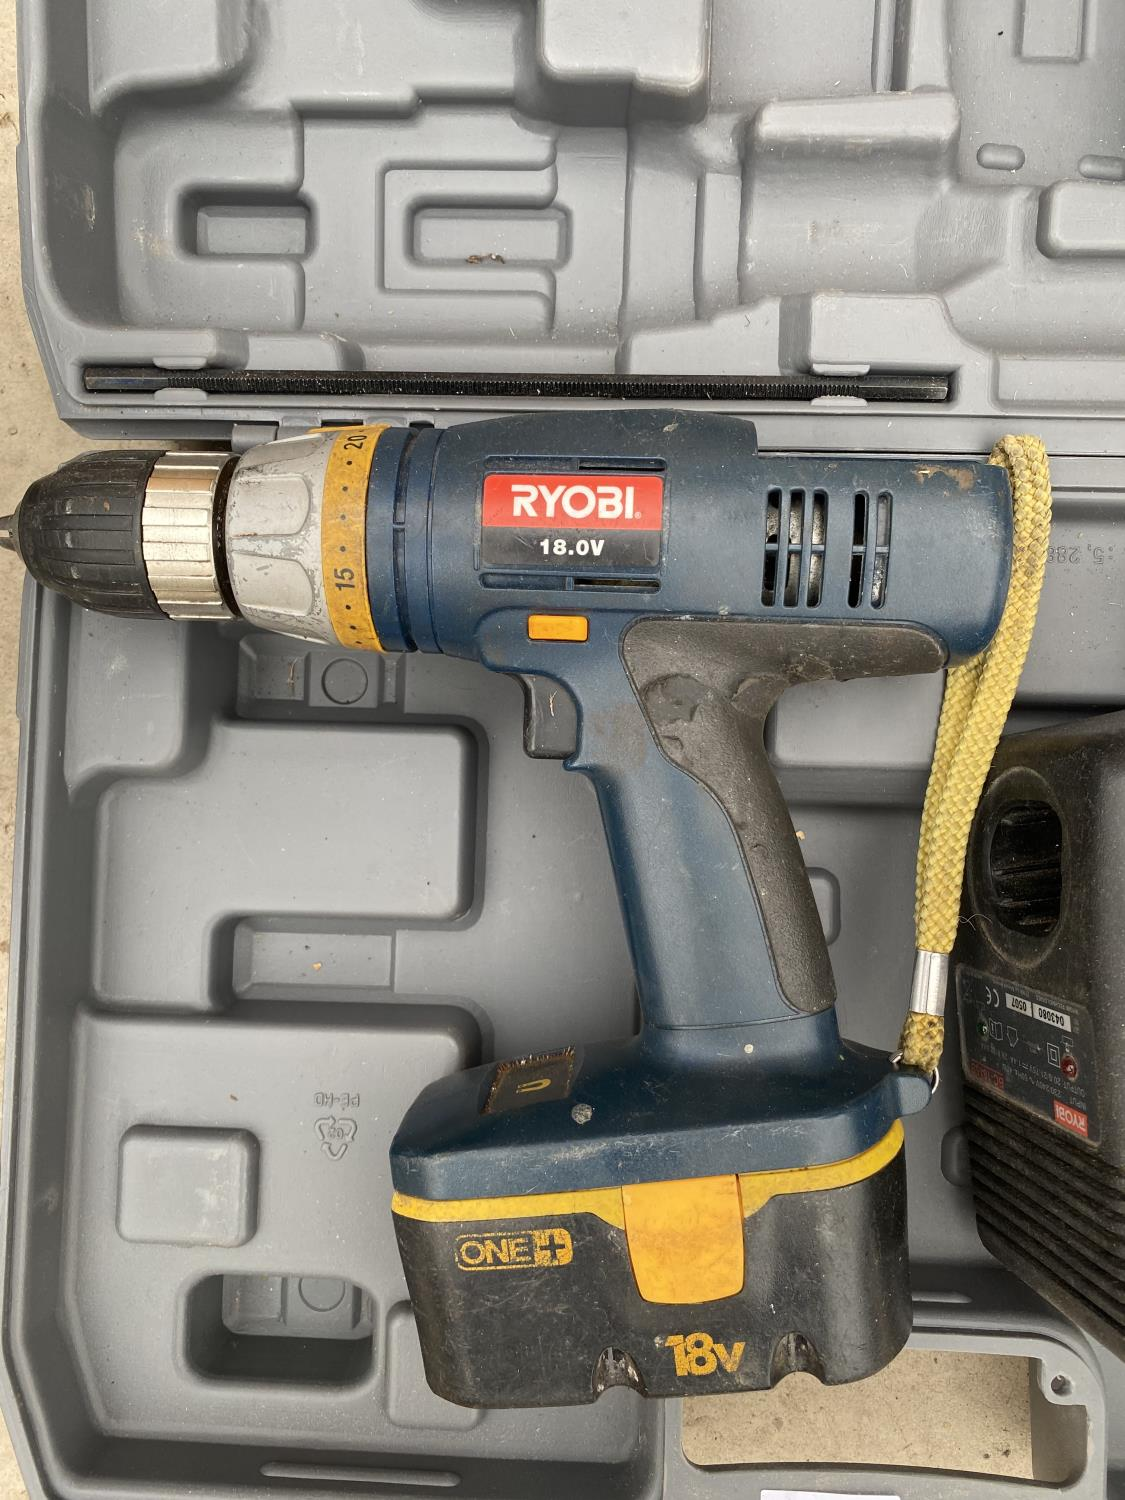 A RYOBI 18V BATTERY DRILL WITH CHARGER - Image 2 of 2